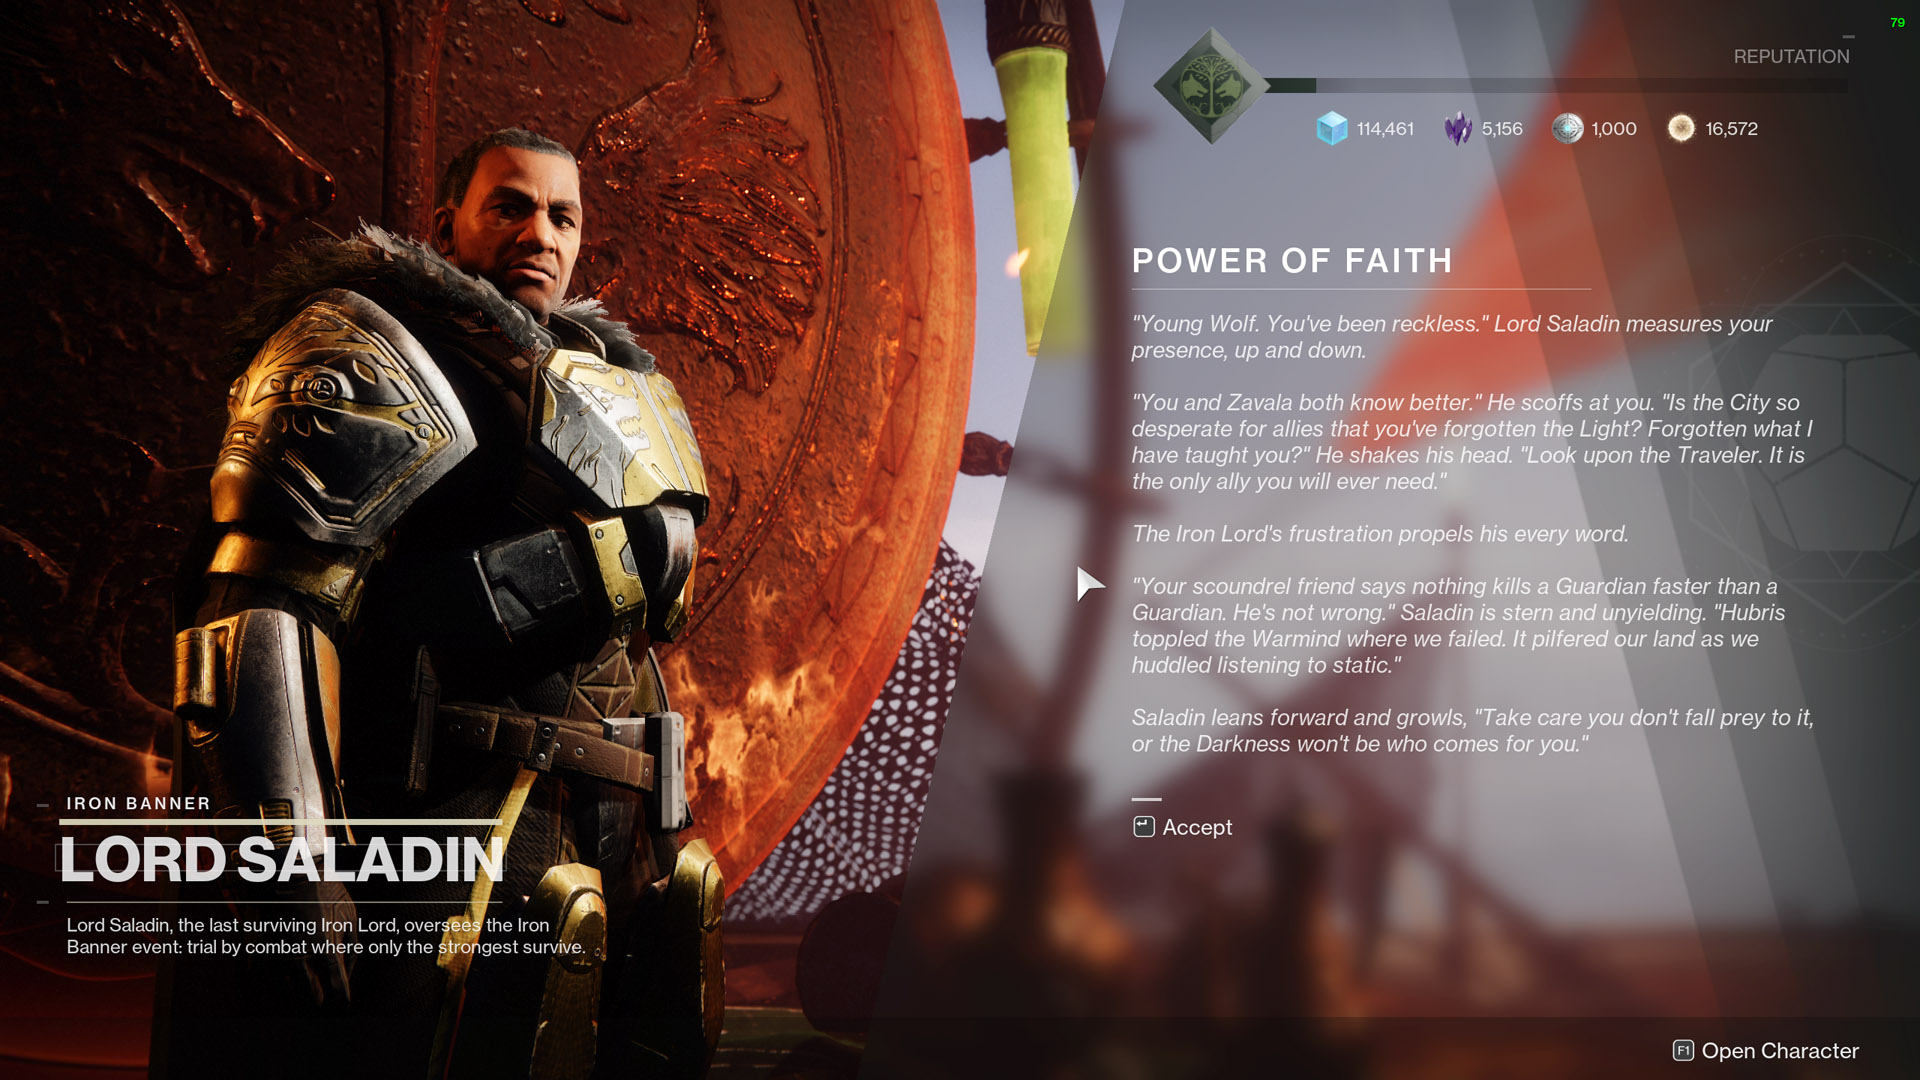 destiny 2 iron banner quest slaying dragons power of faith